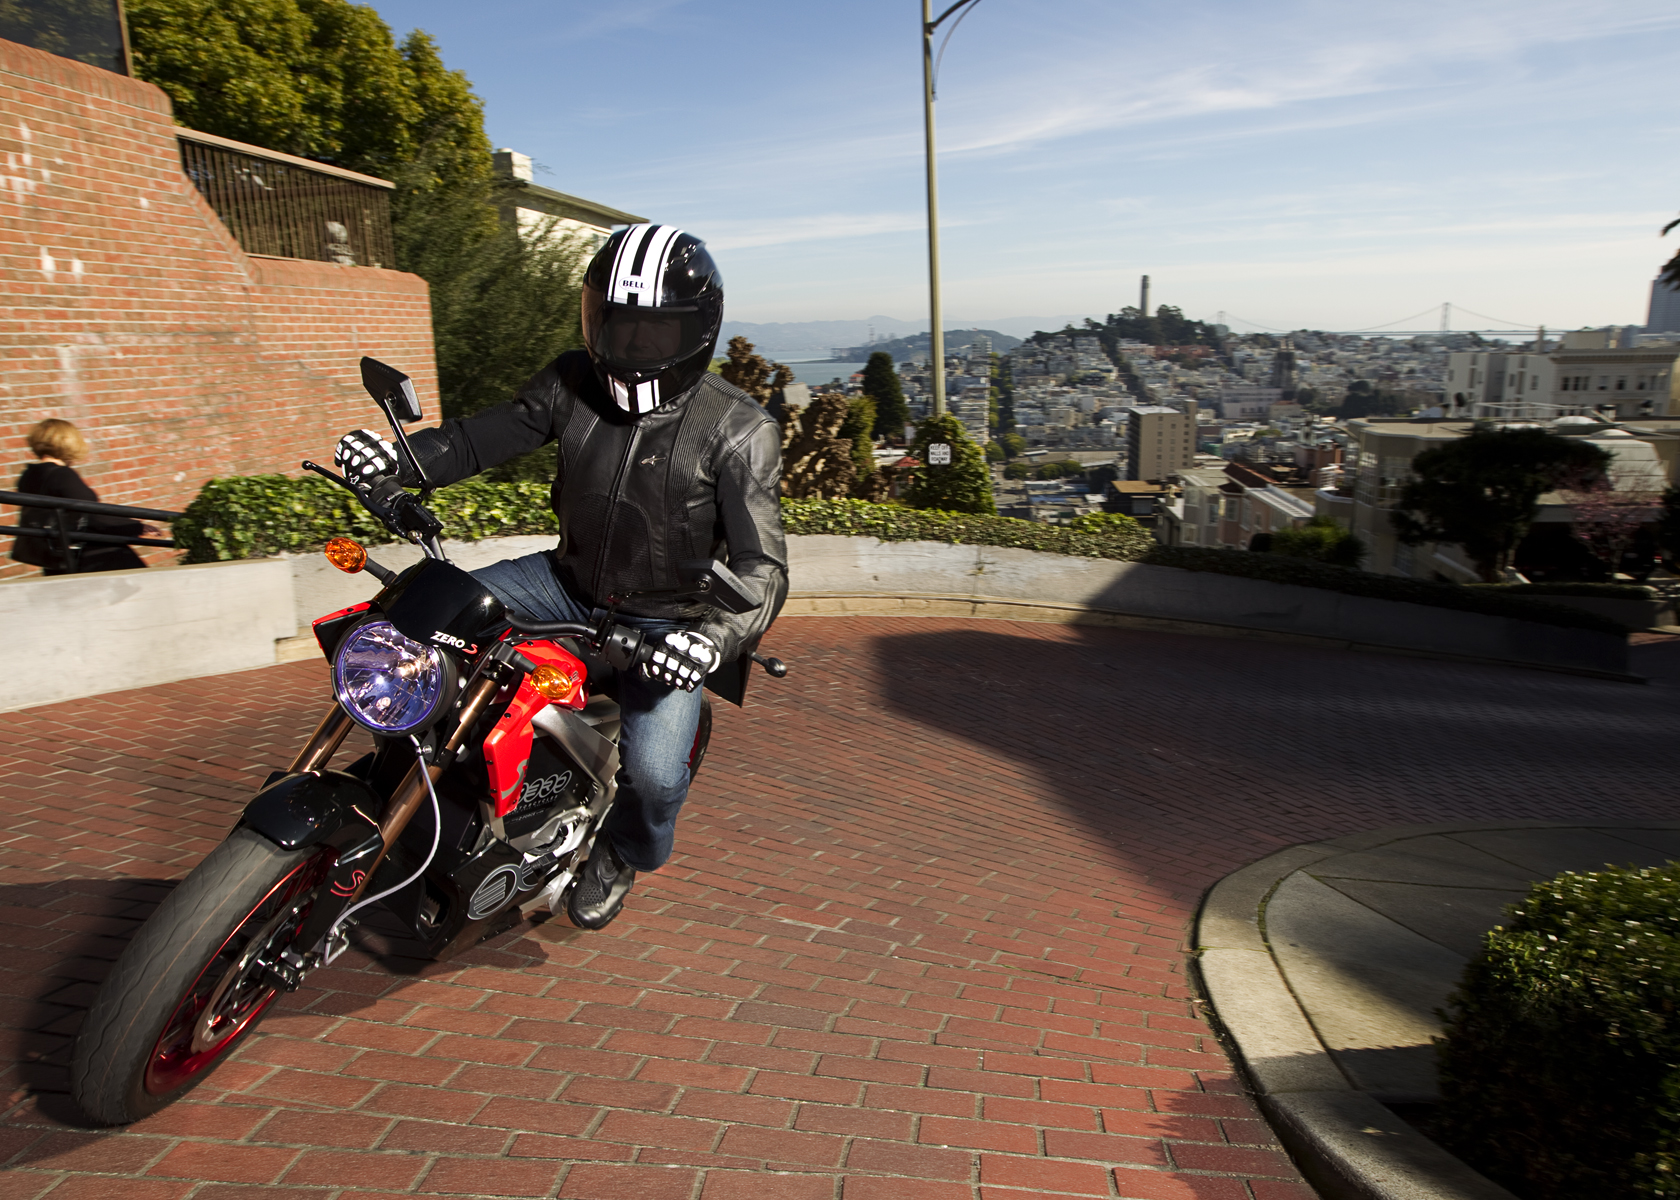 2011 Zero S Electric Motorcycle: Cruising up Lombard Street